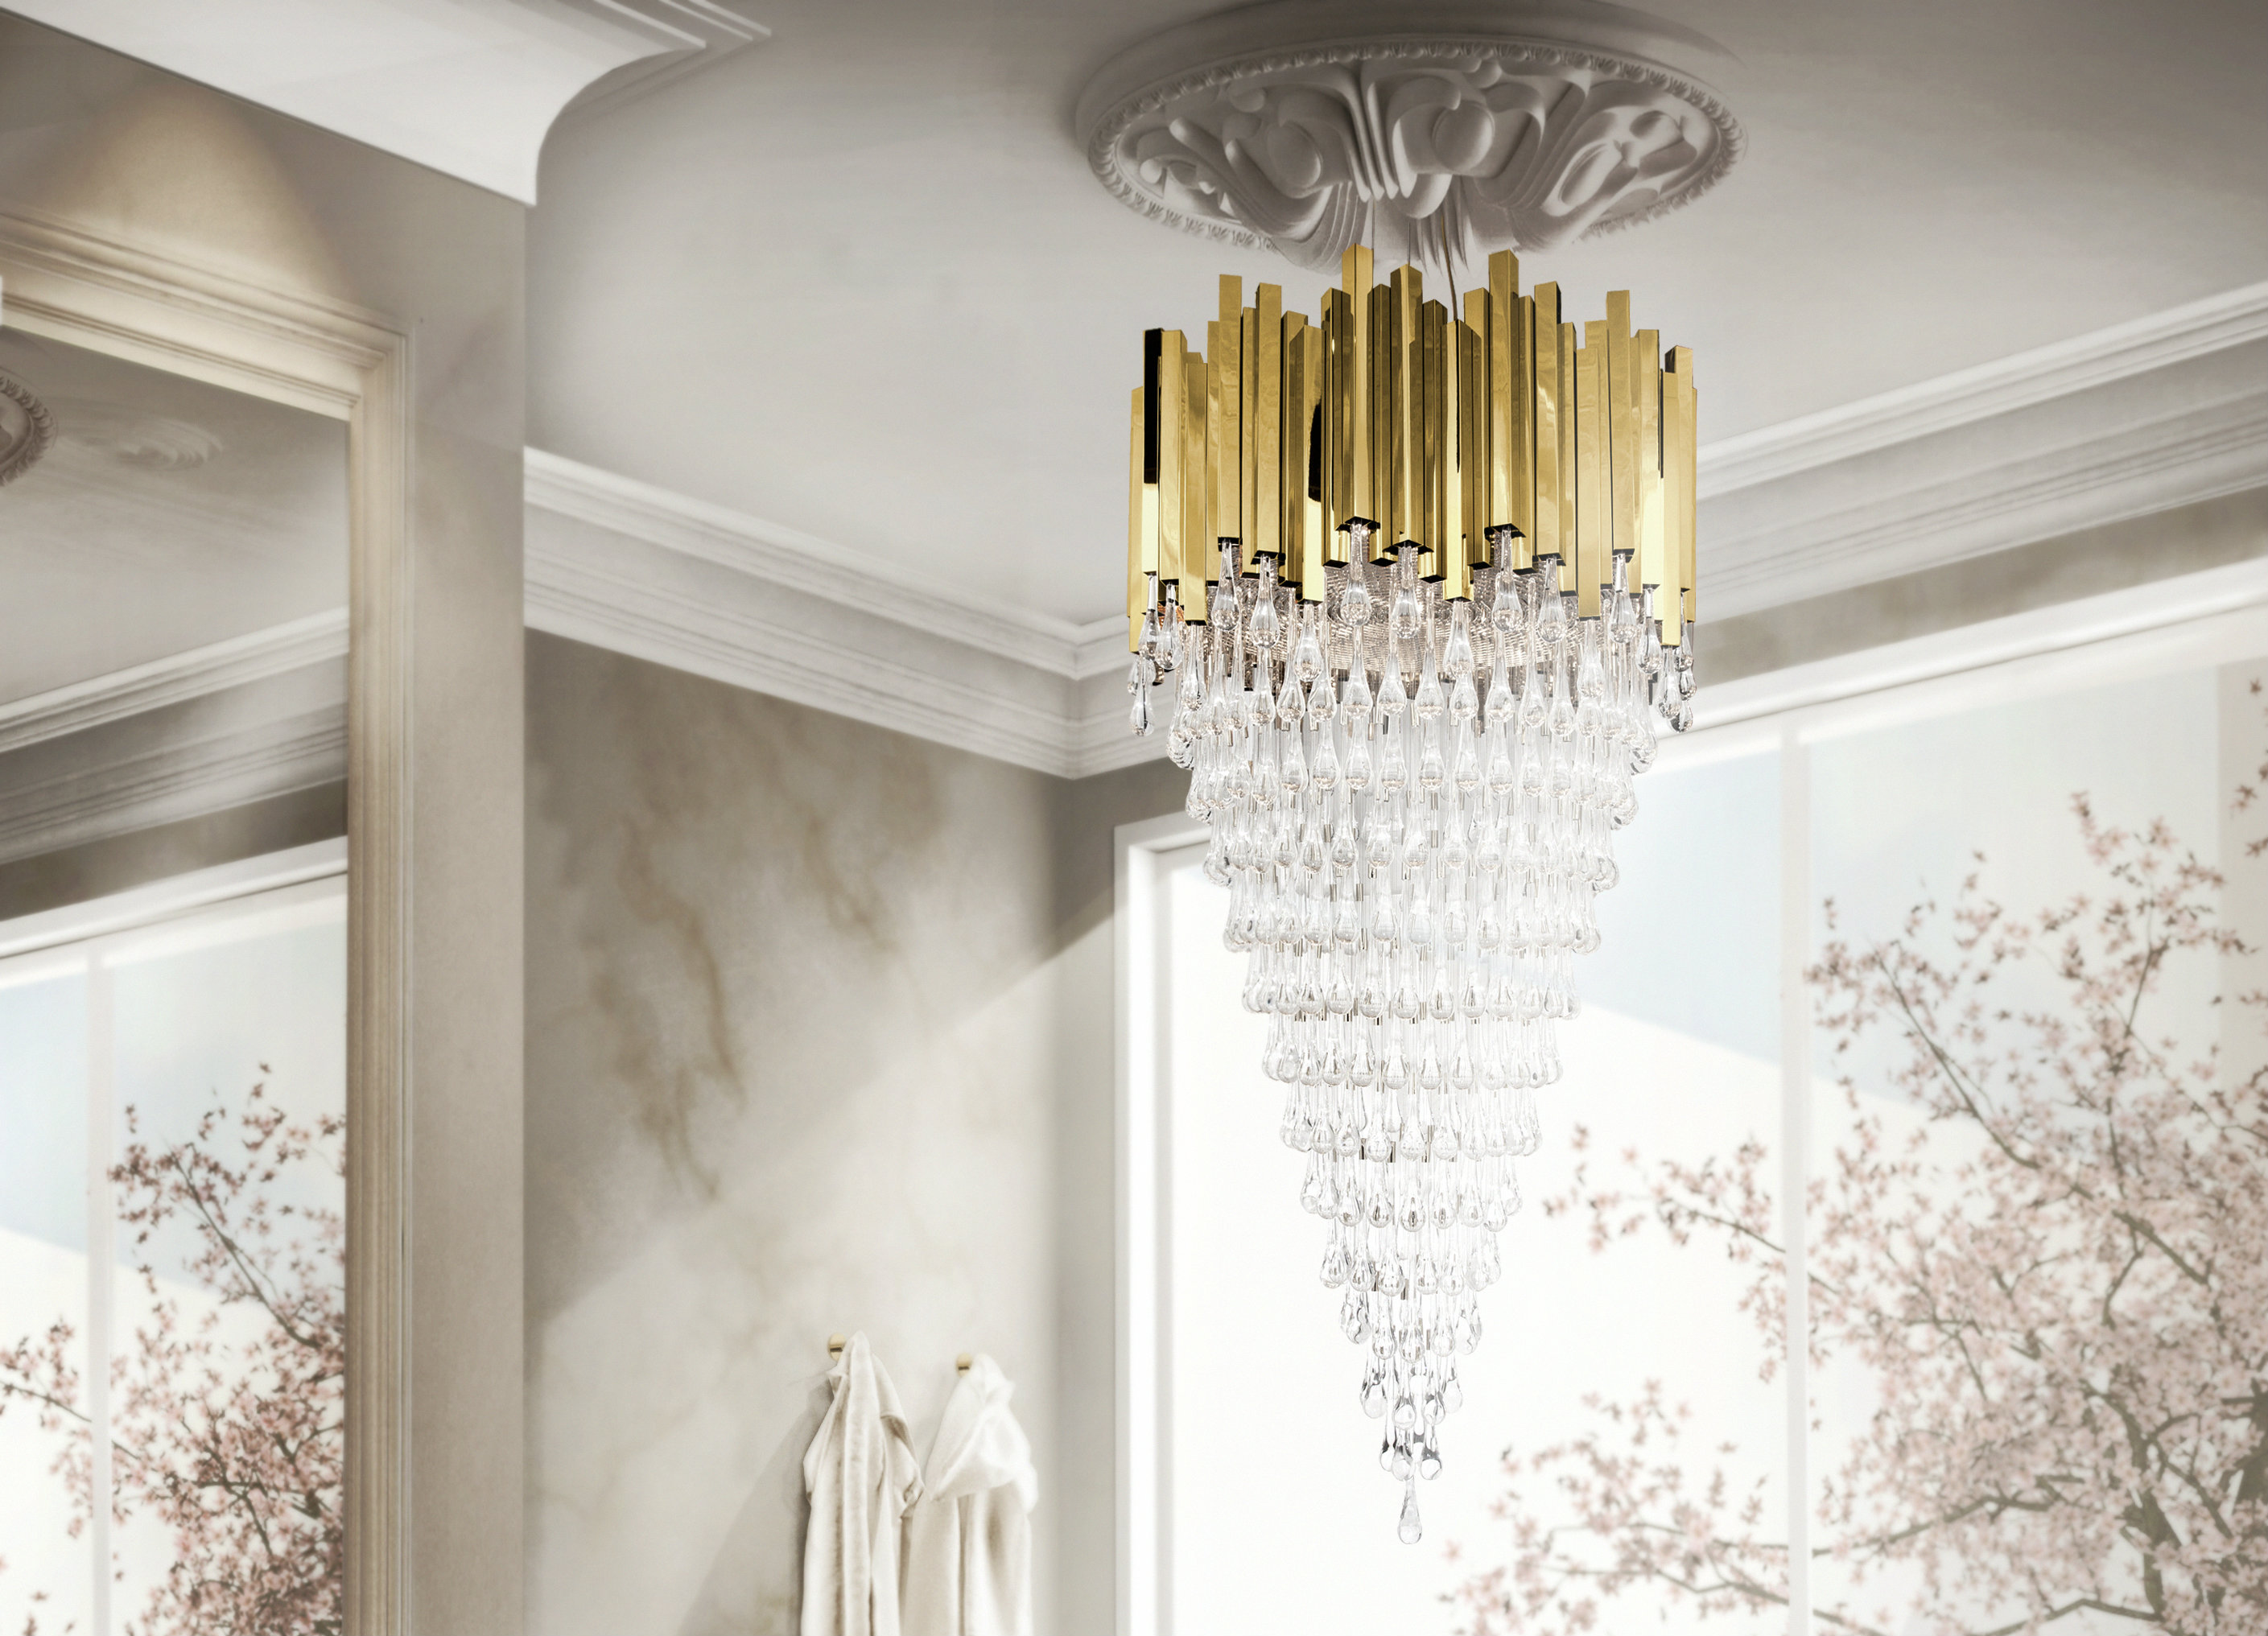 5 Gold chandeliers with crystals to light up your world hallway Beautiful hallway Ideas that you will love trump chandeleir 2 hallway Beautiful hallway Ideas that you will love trump chandeleir 2